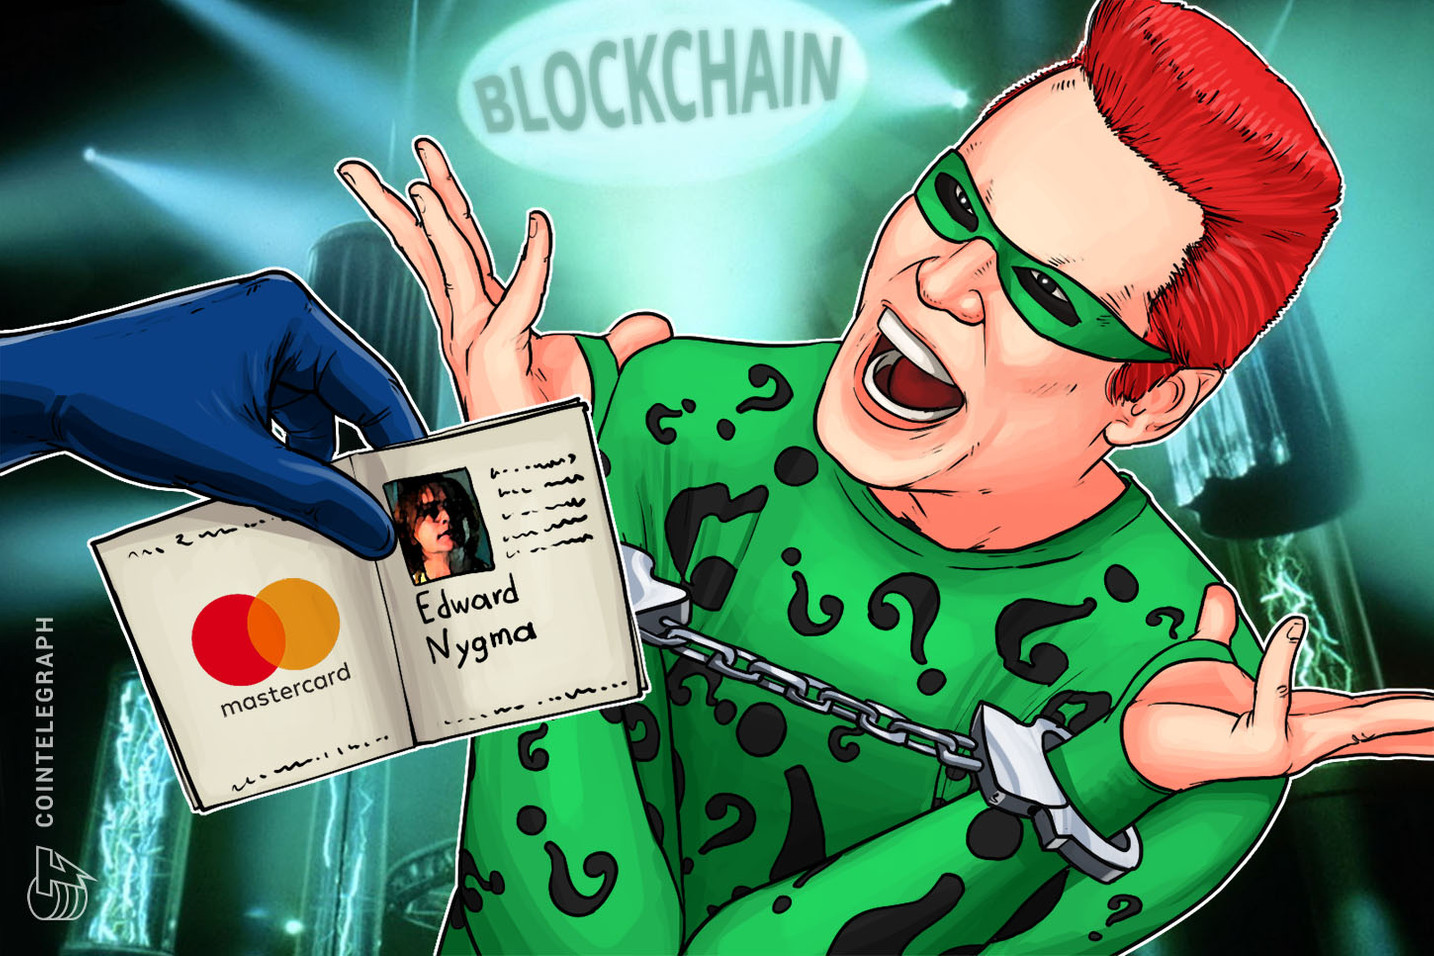 Mastercard Patents Blockchain Tech To Combat Fake Identities